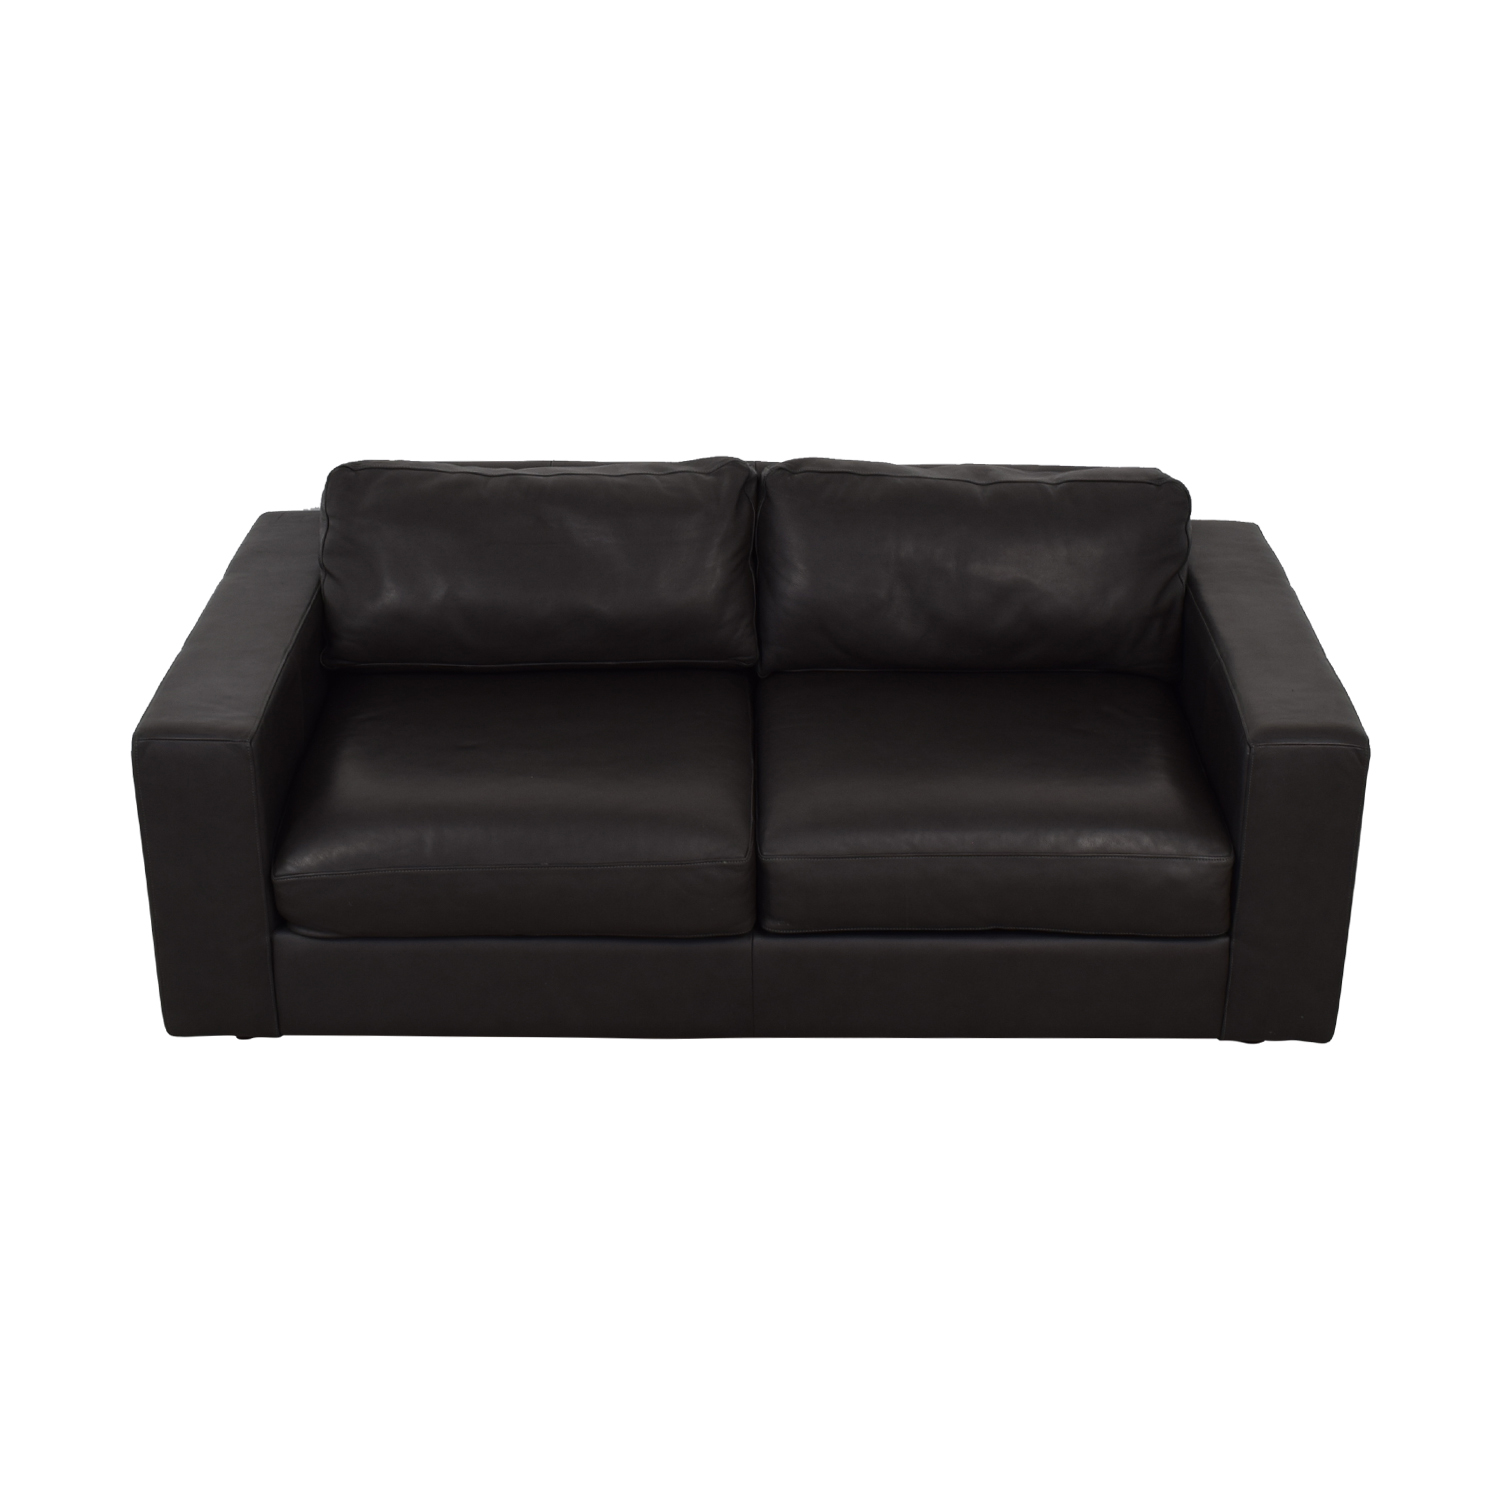 West Elm West Elm Urban Graphite Leather Loveseat for sale